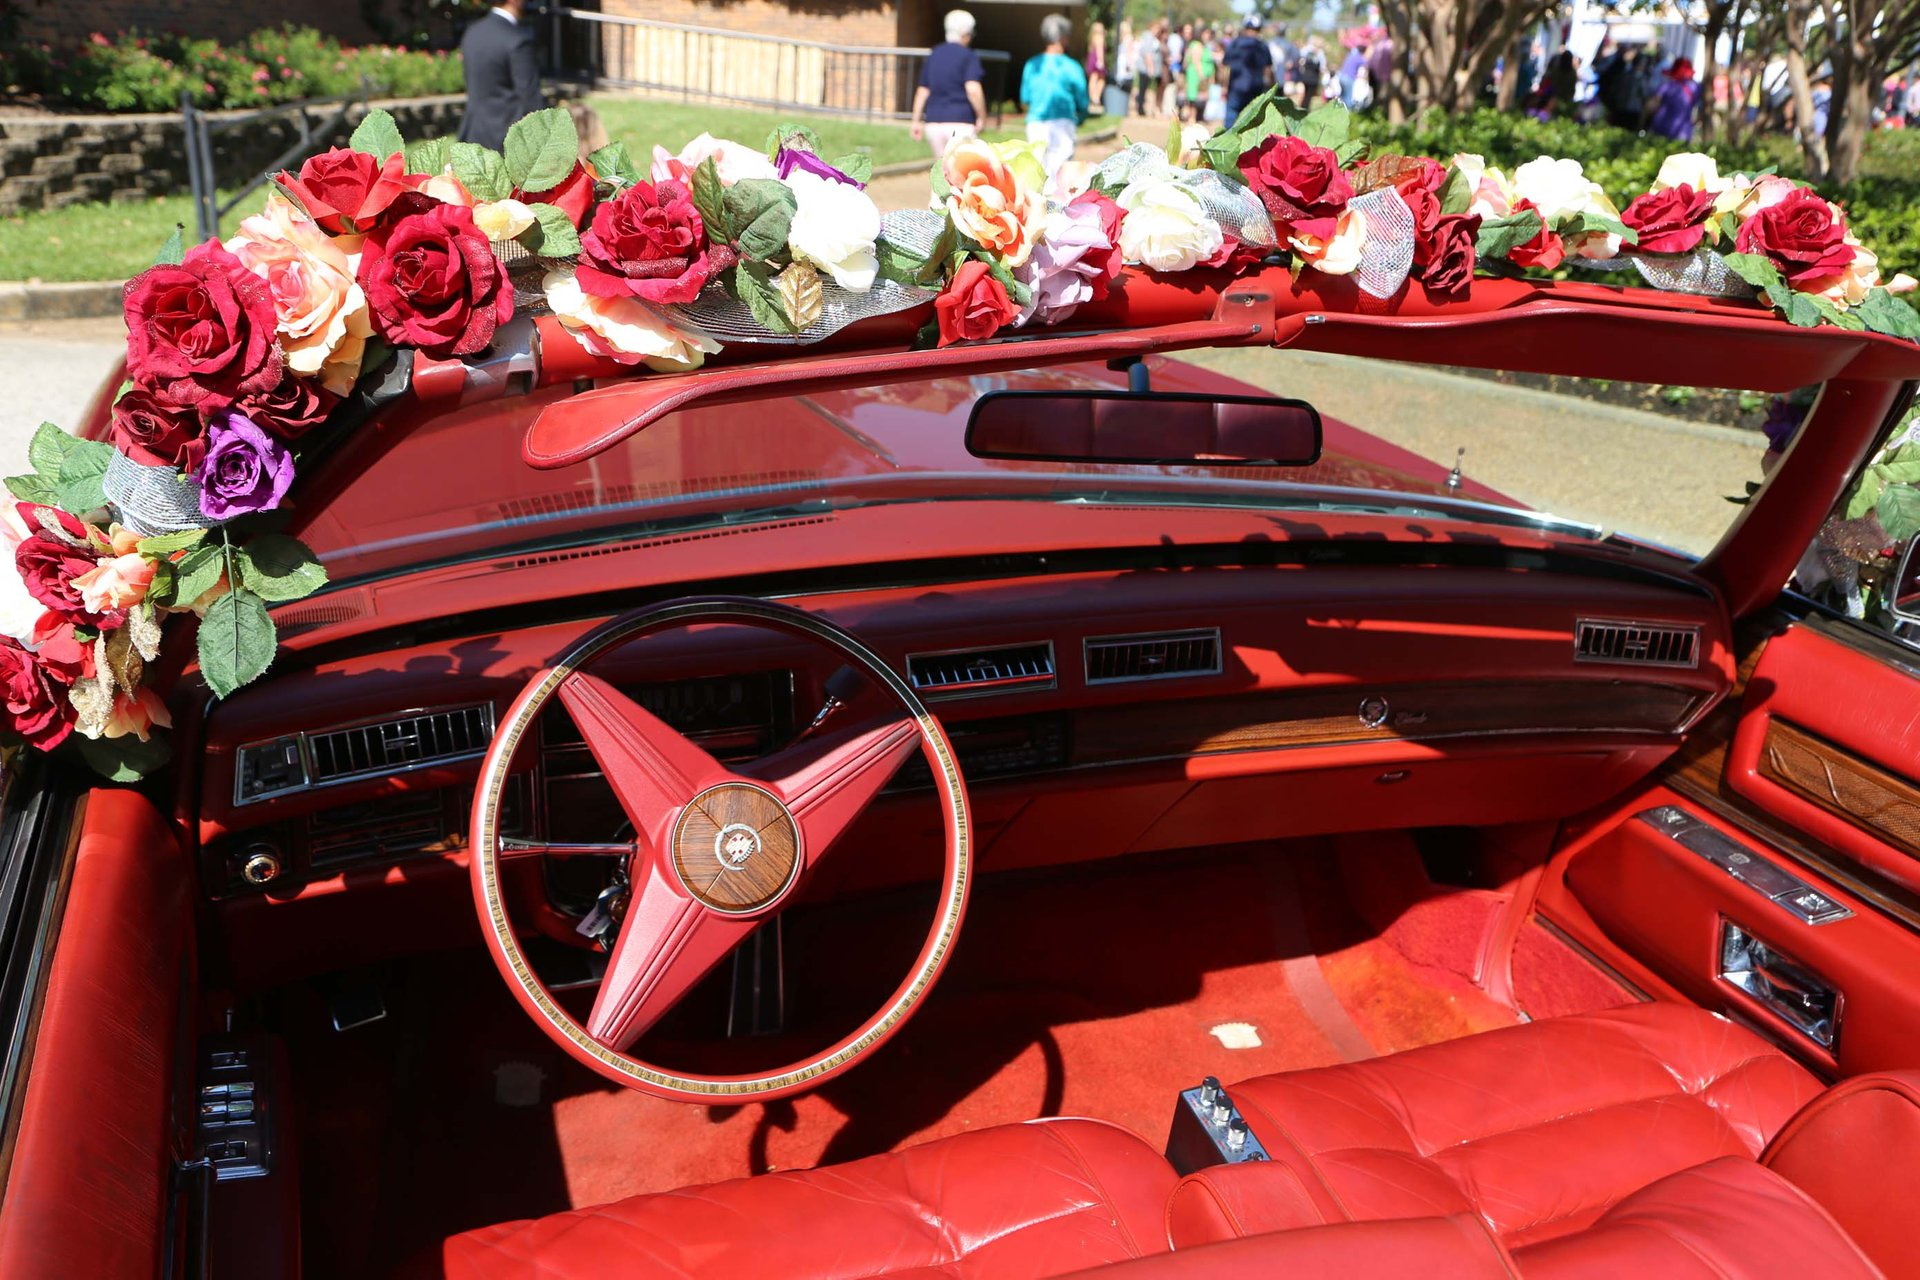 Best time to see Texas Rose Festival in Texas 2020